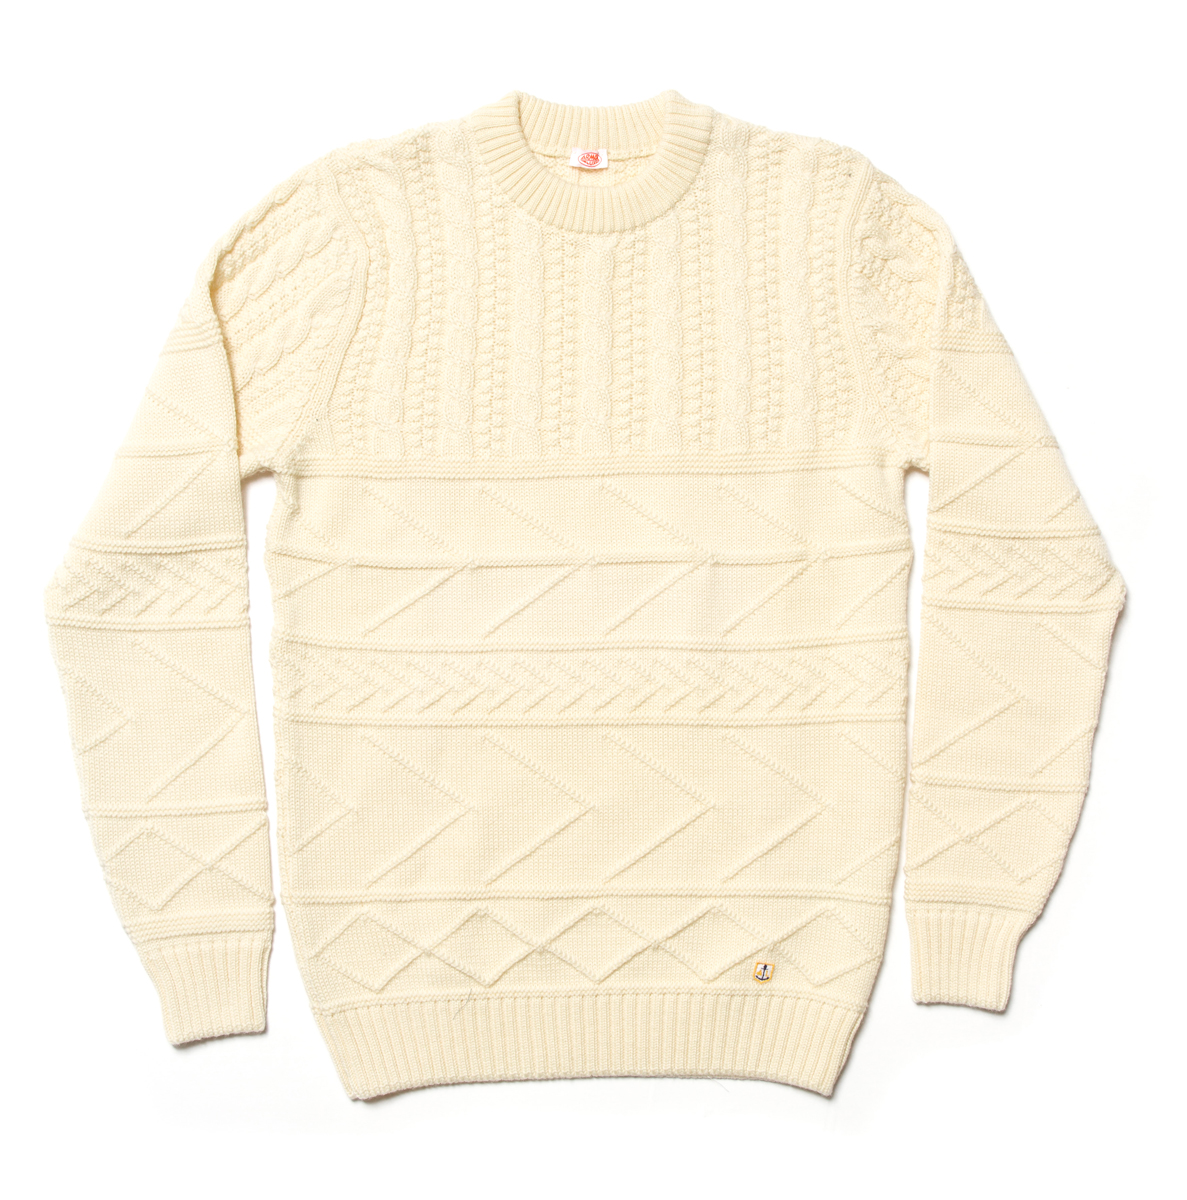 Armor-Lux  Irish Sweater  £140